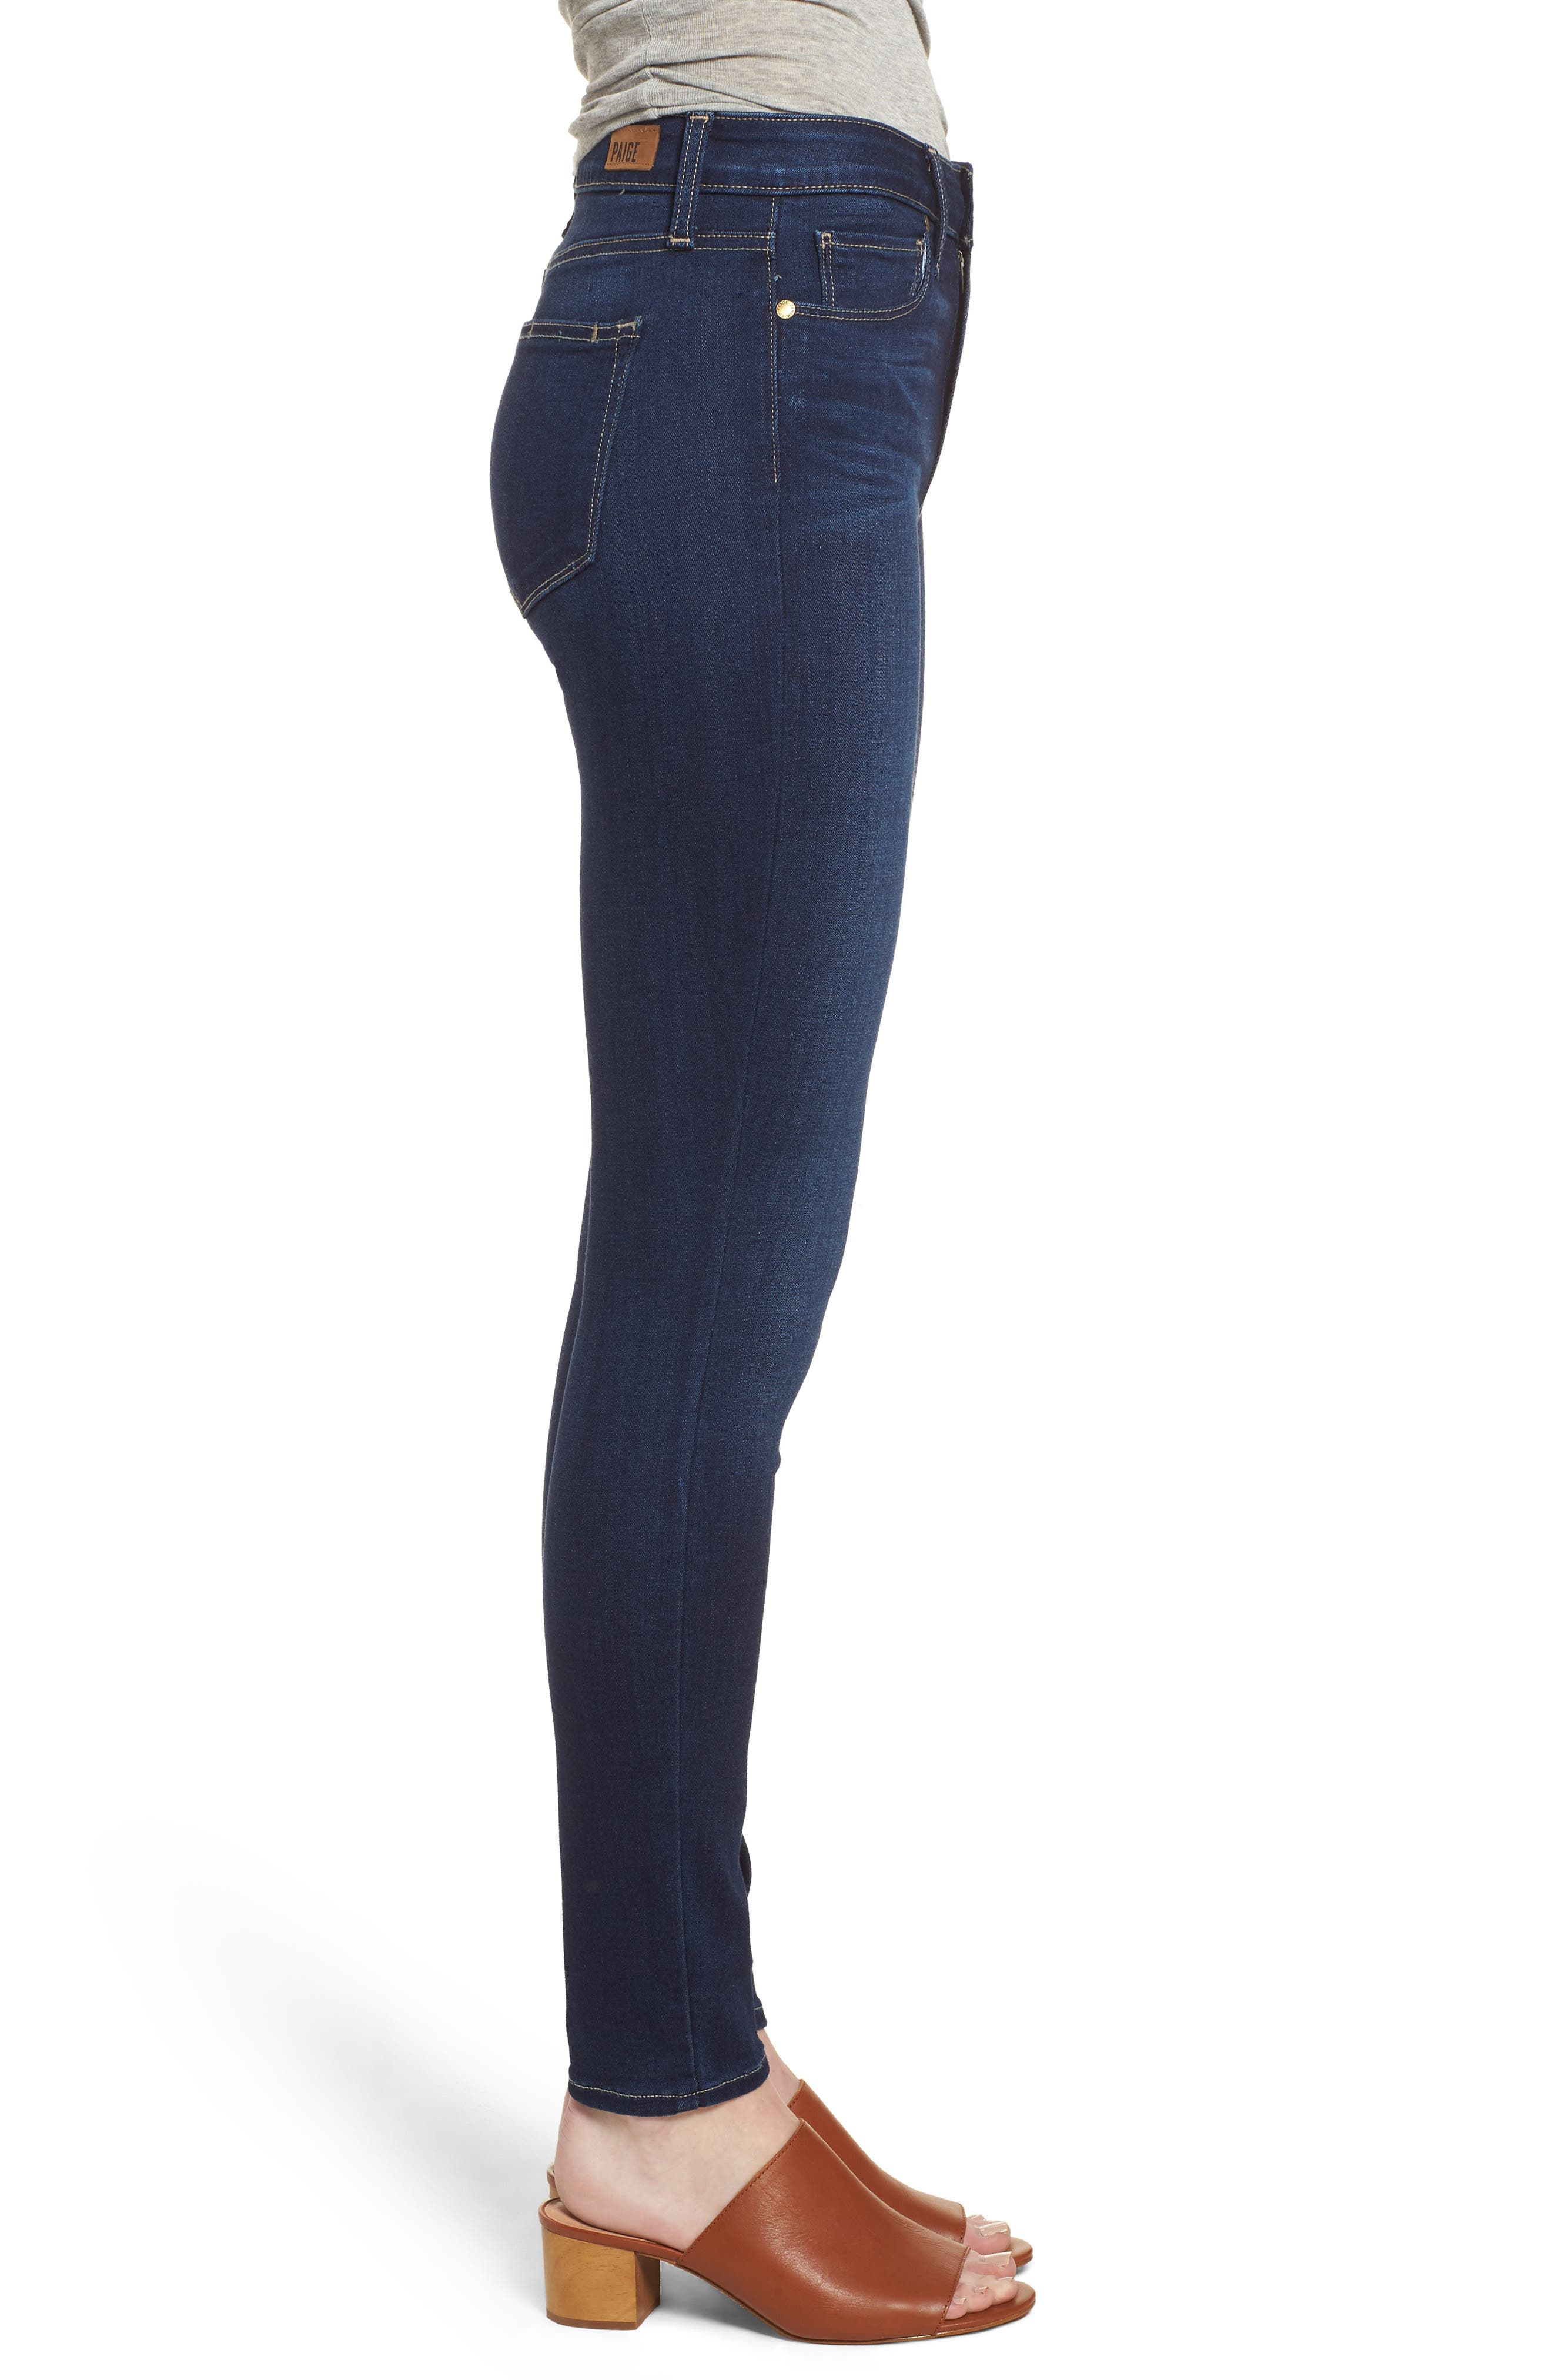 Hoxton High Waist Ankle Skinny Jeans,                             Alternate thumbnail 3, color,                             Calani